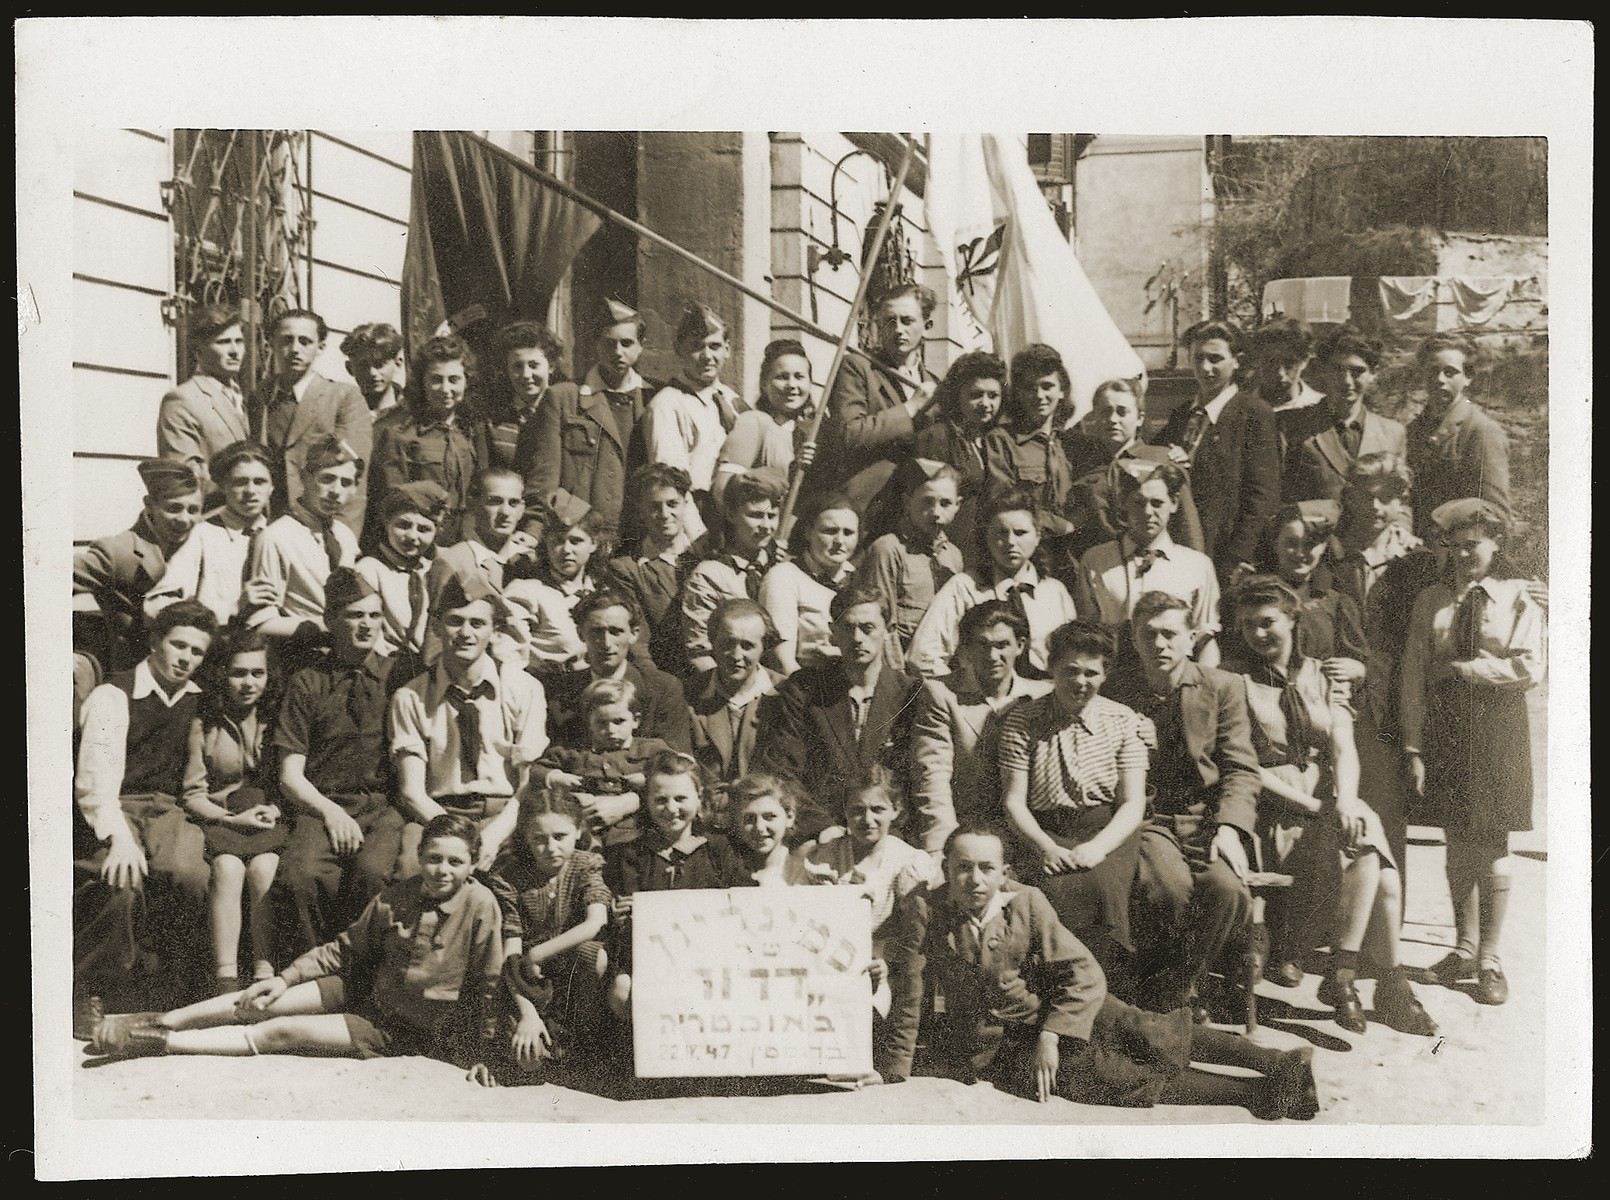 Group portrait of Dror Zionist youth at a seminar in the Bindermichl displaced persons camp.